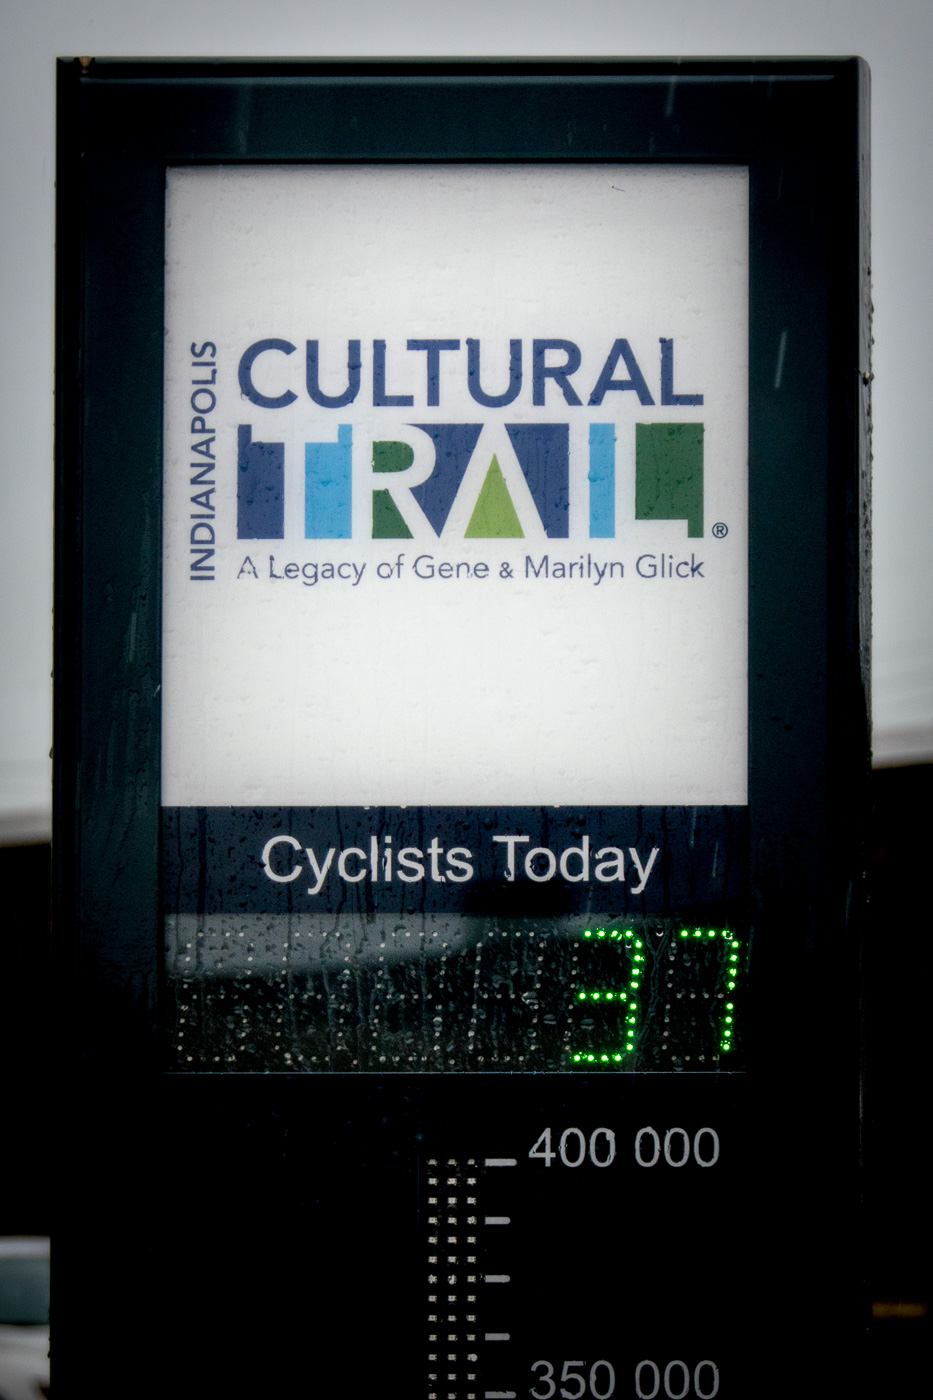 Today I was cyclist #37. Yesterday at about the same time I was #212.